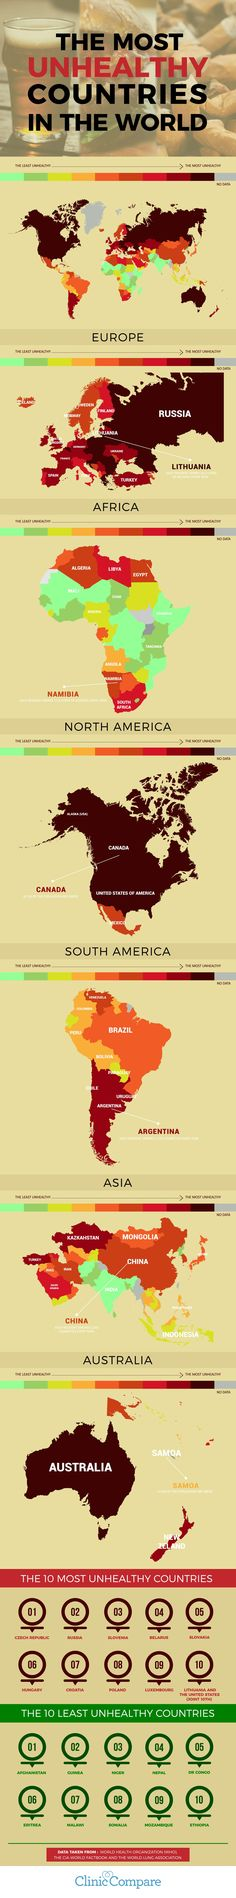 The Most Unhealthy Countries in the World - Clinic Compare